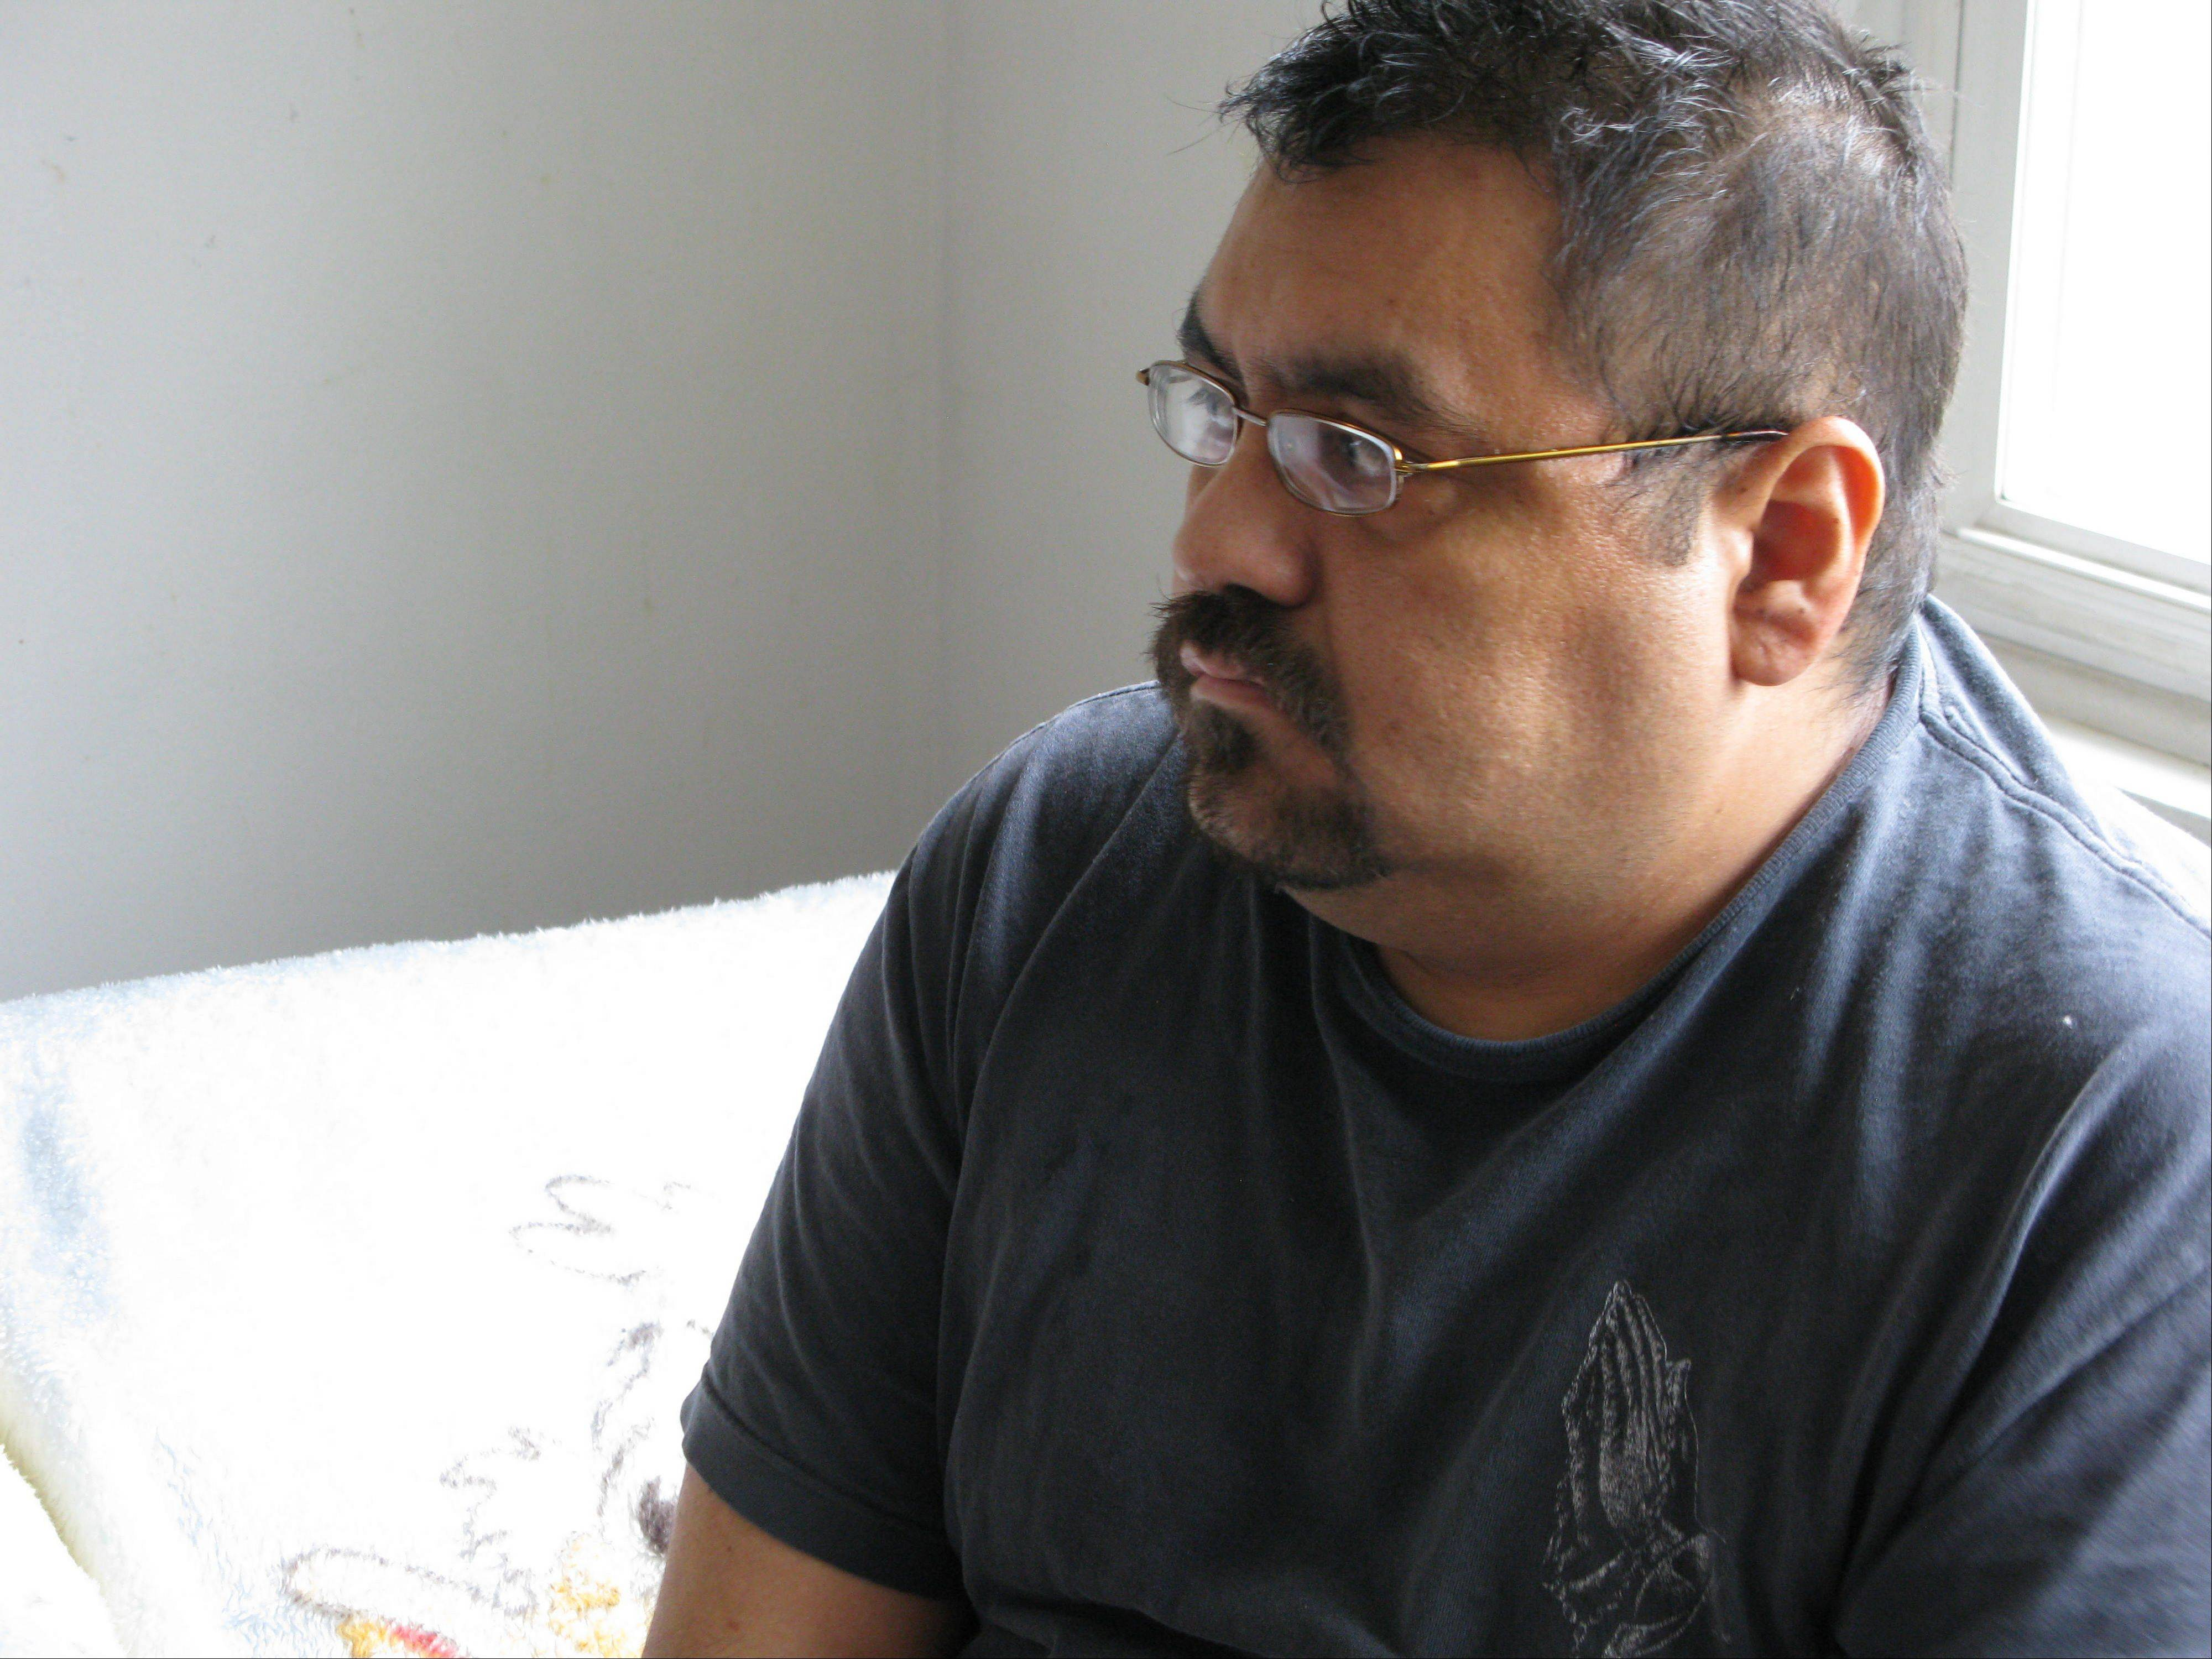 Neftali Hernandez, 35, suffers from aplastic anemia and is in need of a donor for a bone-marrow transplant. So far, he has not been able to find a suitable match.